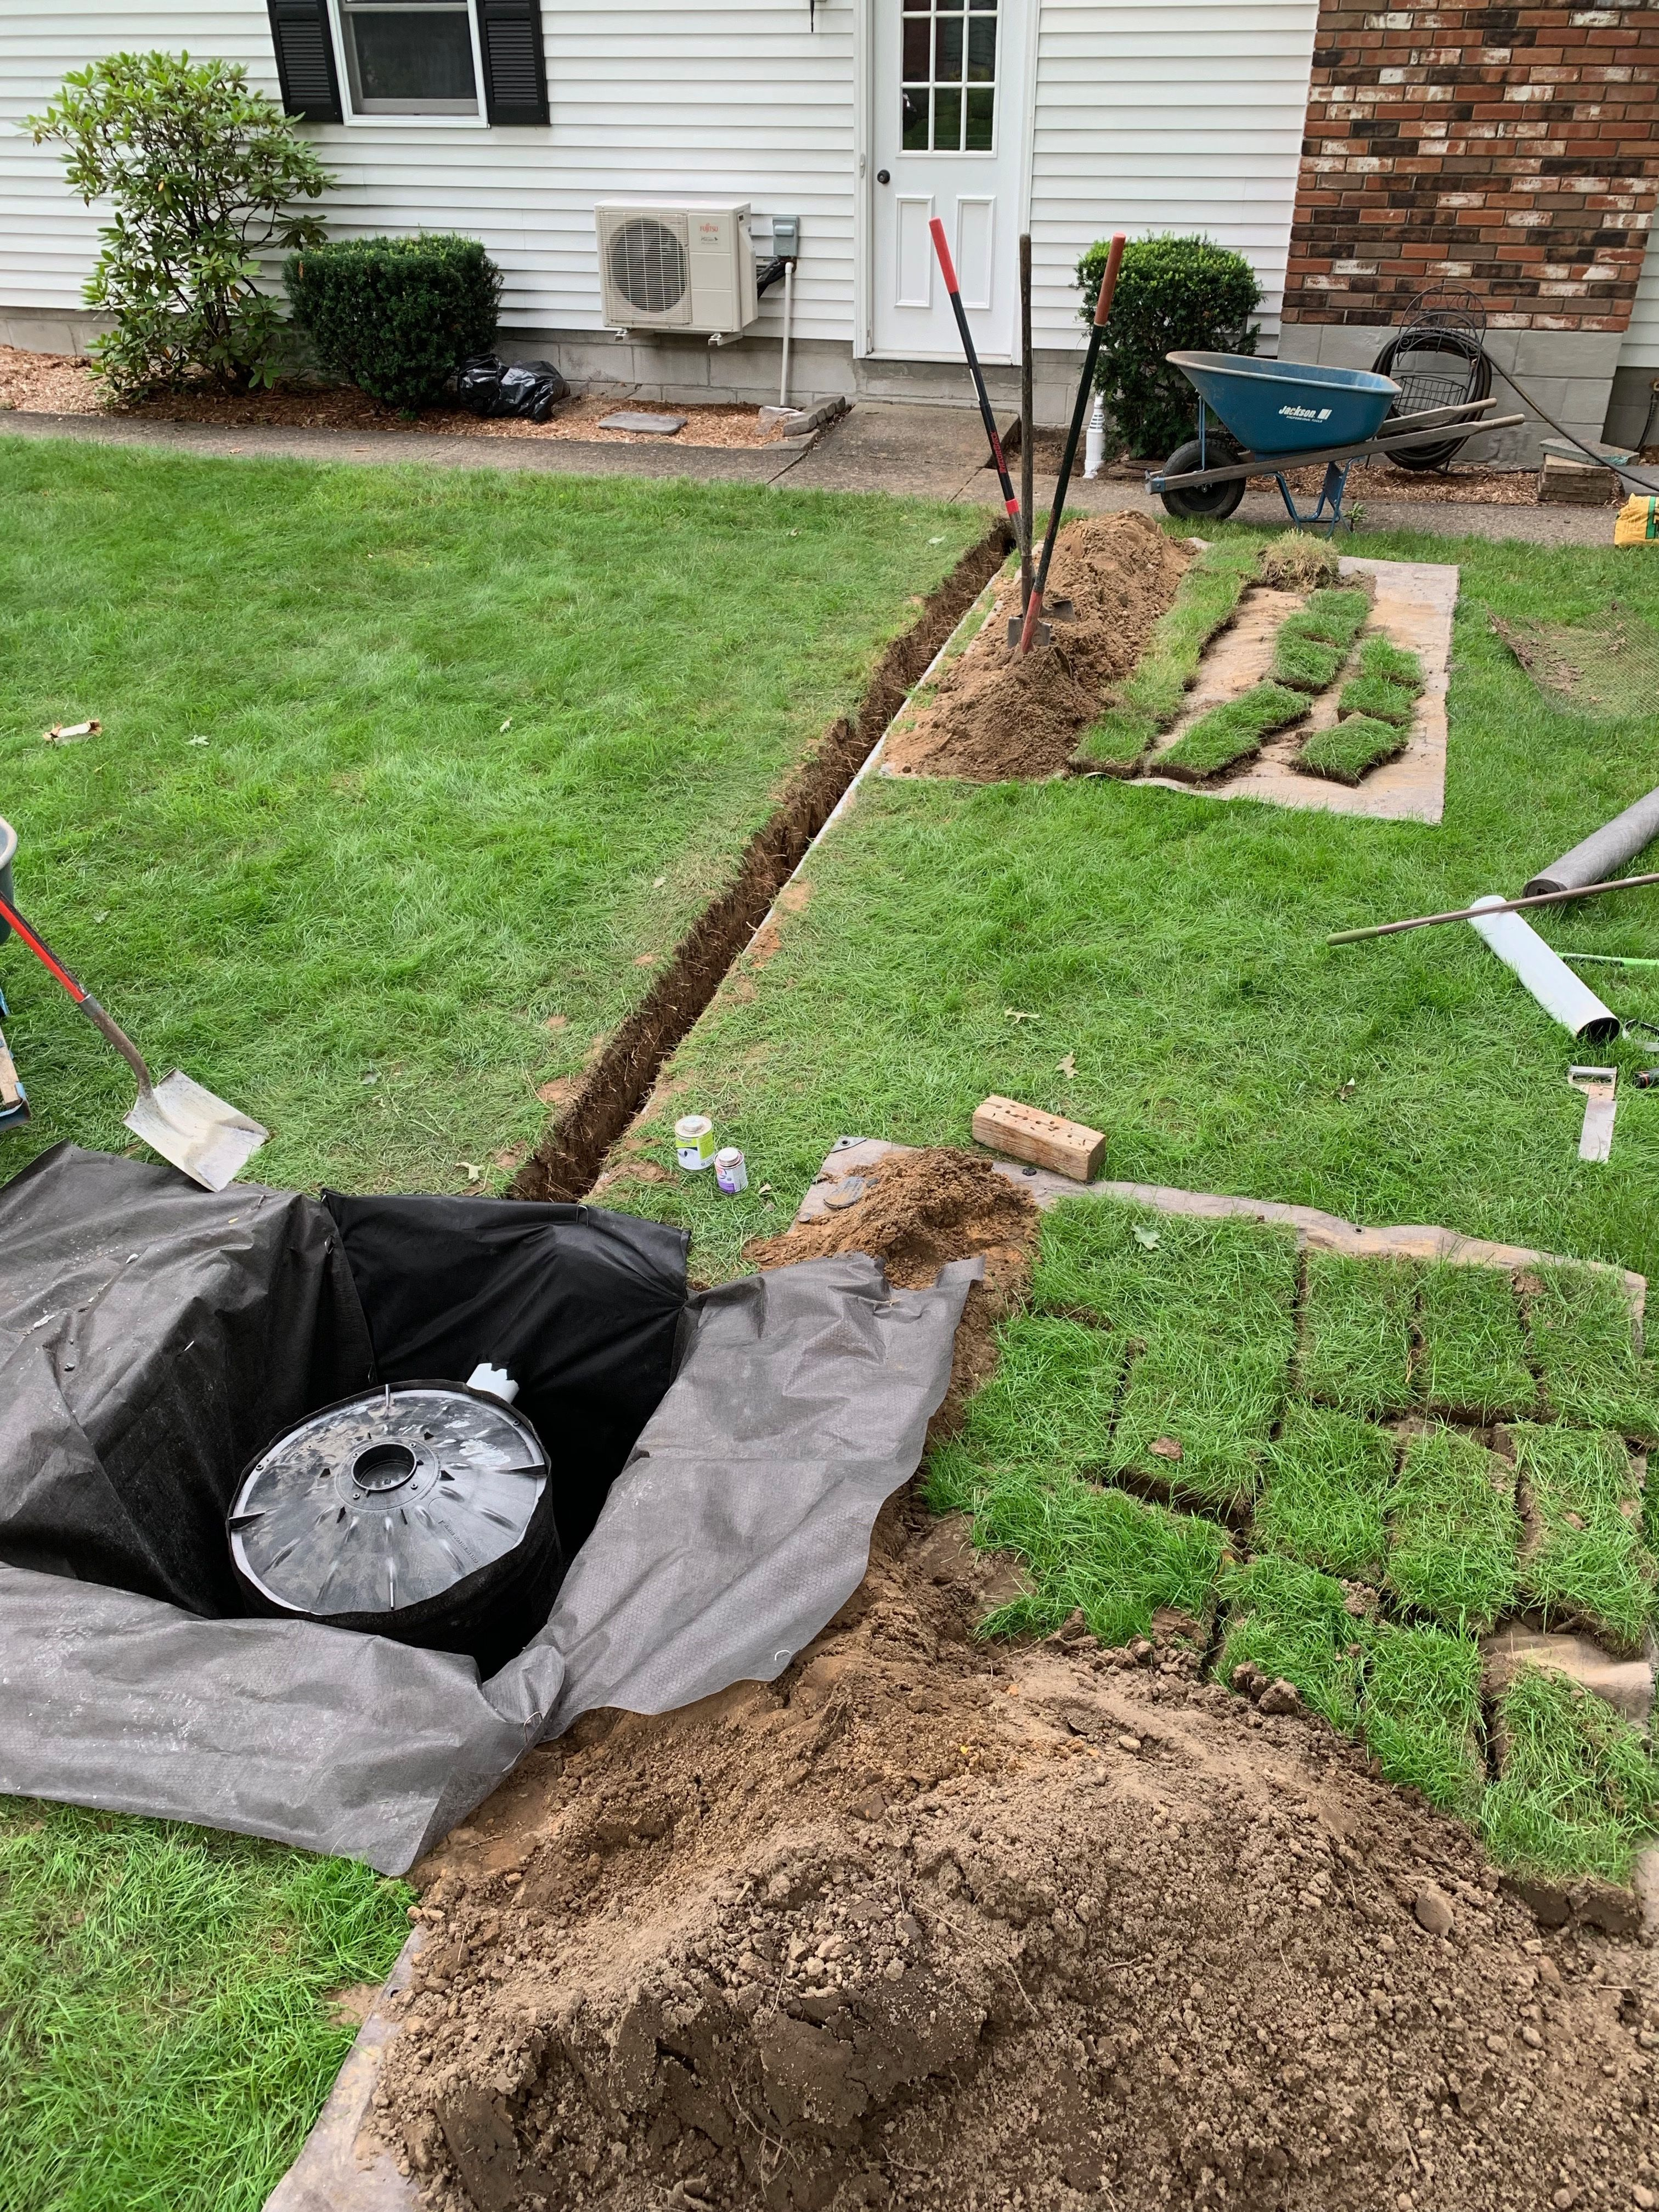 Underground Drainage Pit Installation For Sump Pump Water Foundation And Basement Waterproofing In 2020 Sump Pump Installation Sump Pump Underground Drainage